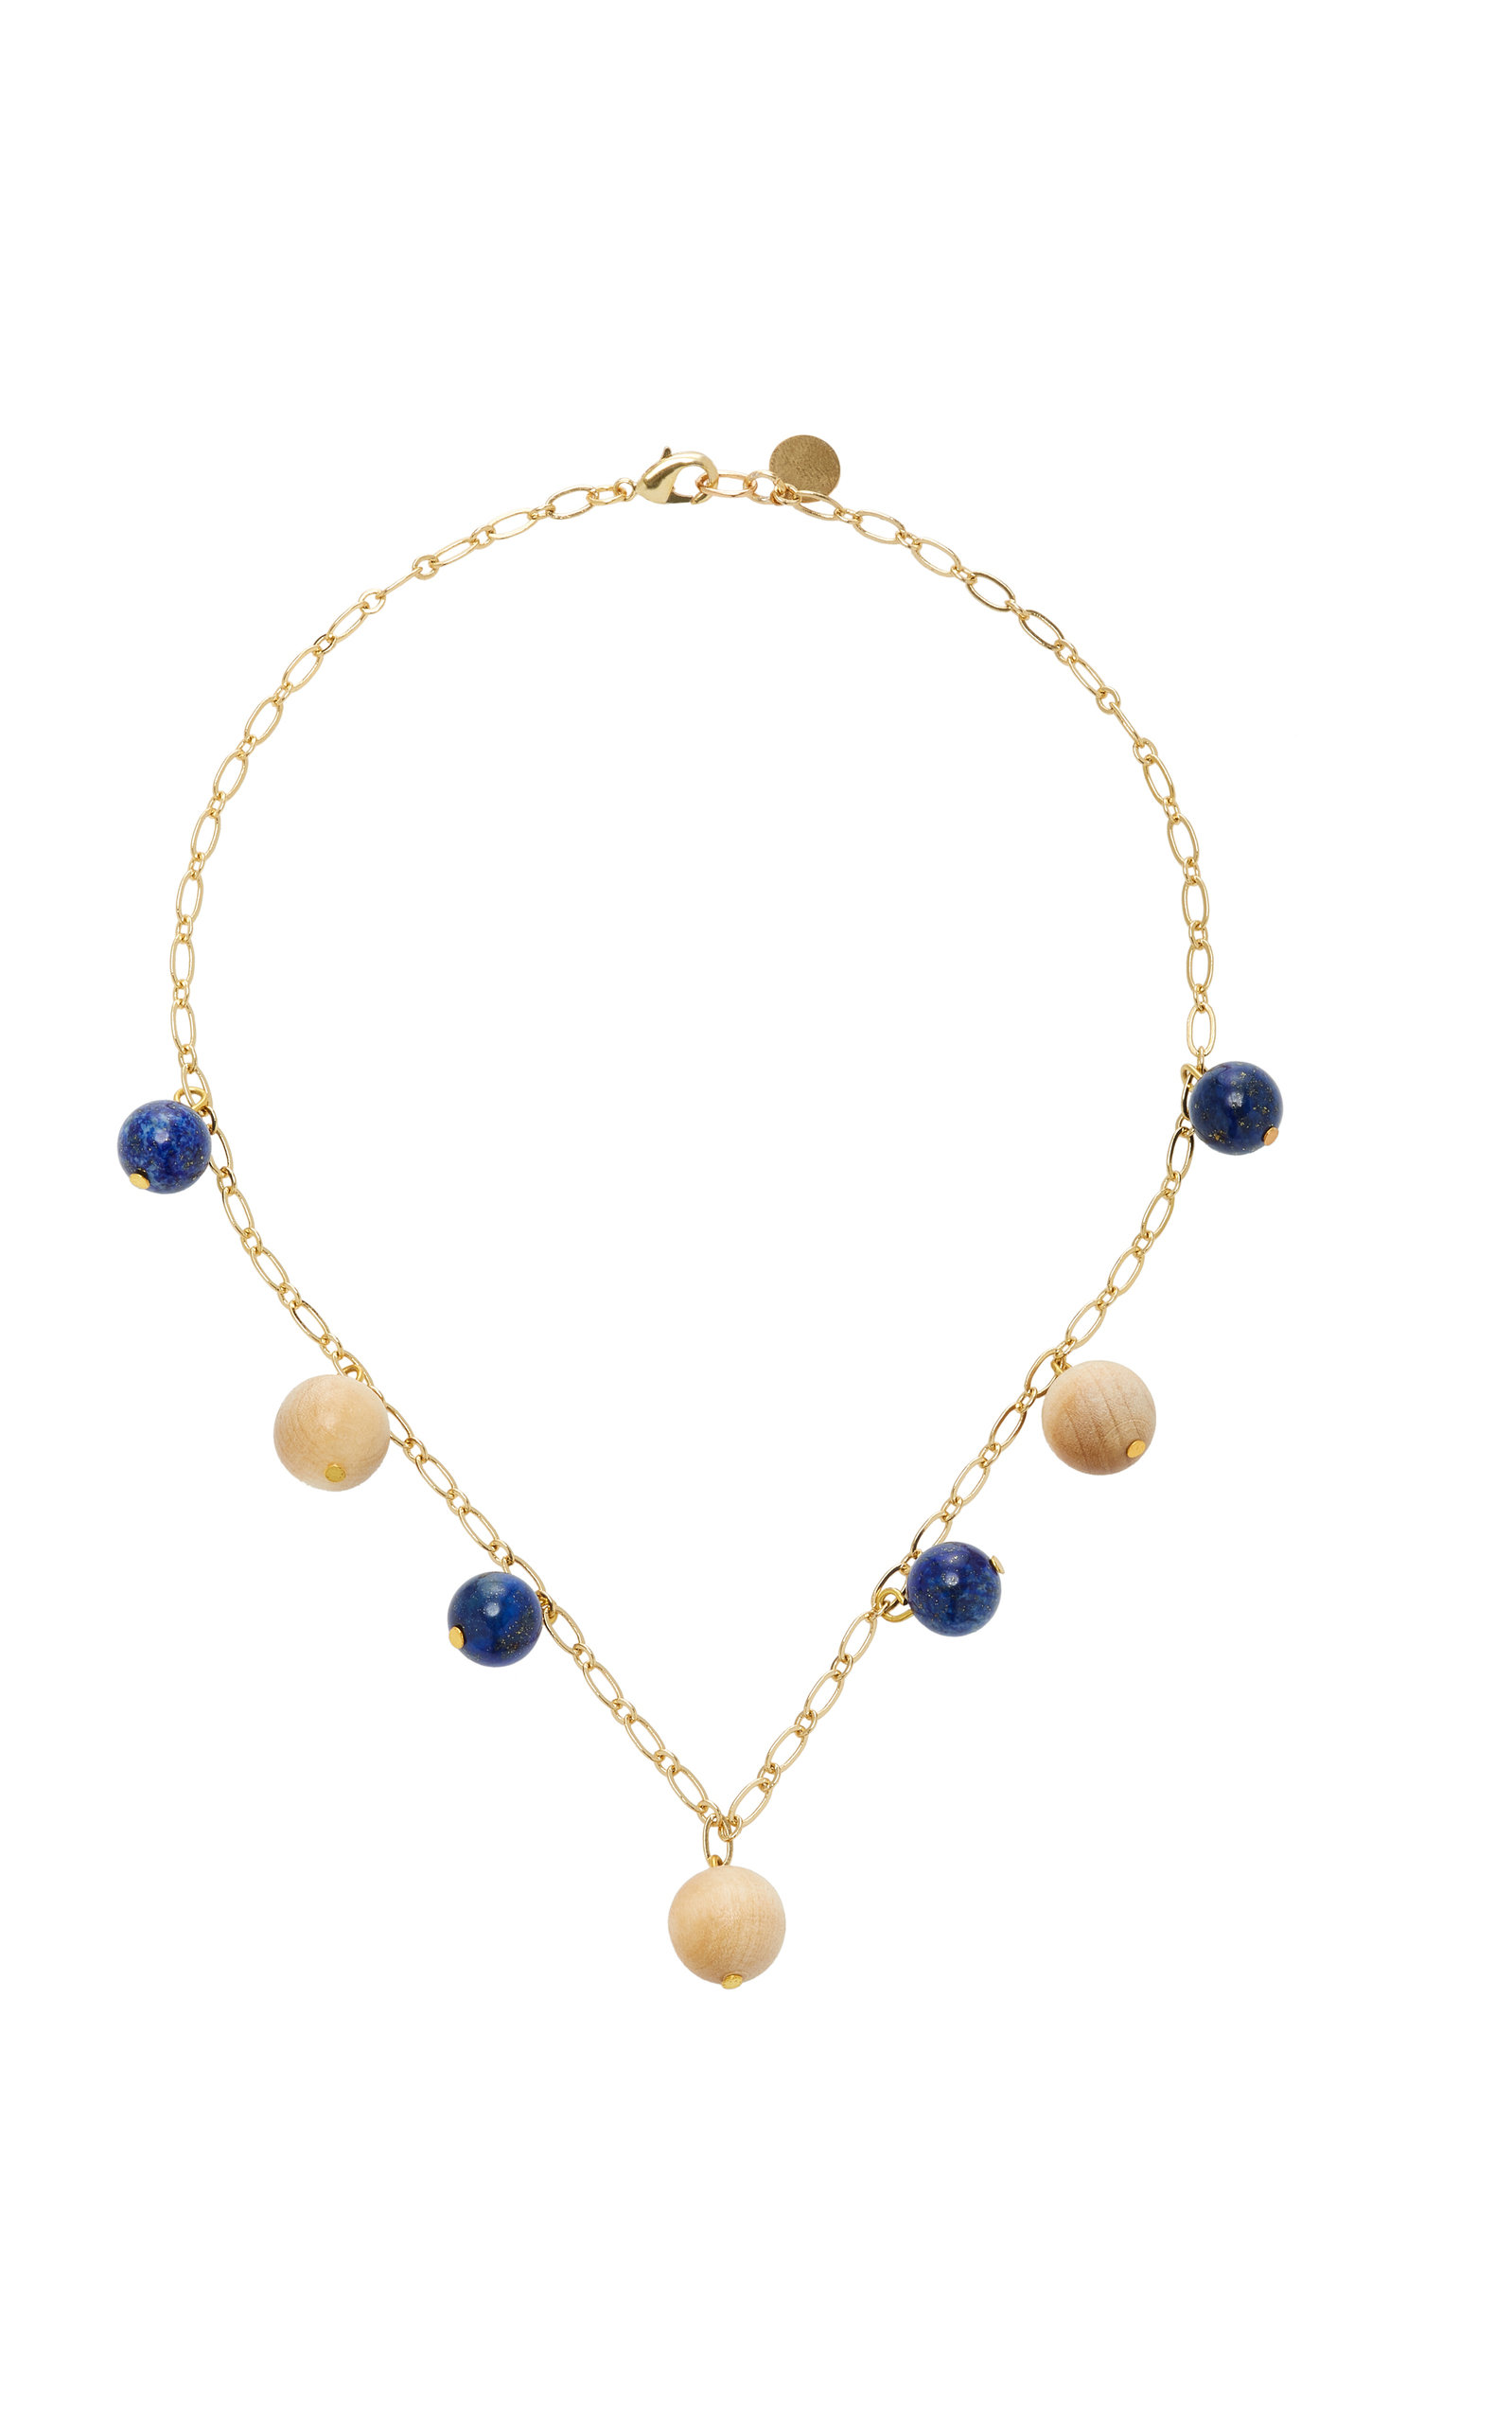 SOPHIE MONET THE LUNA GOLD-PLATED LAPIS AND PINE NECKLACE